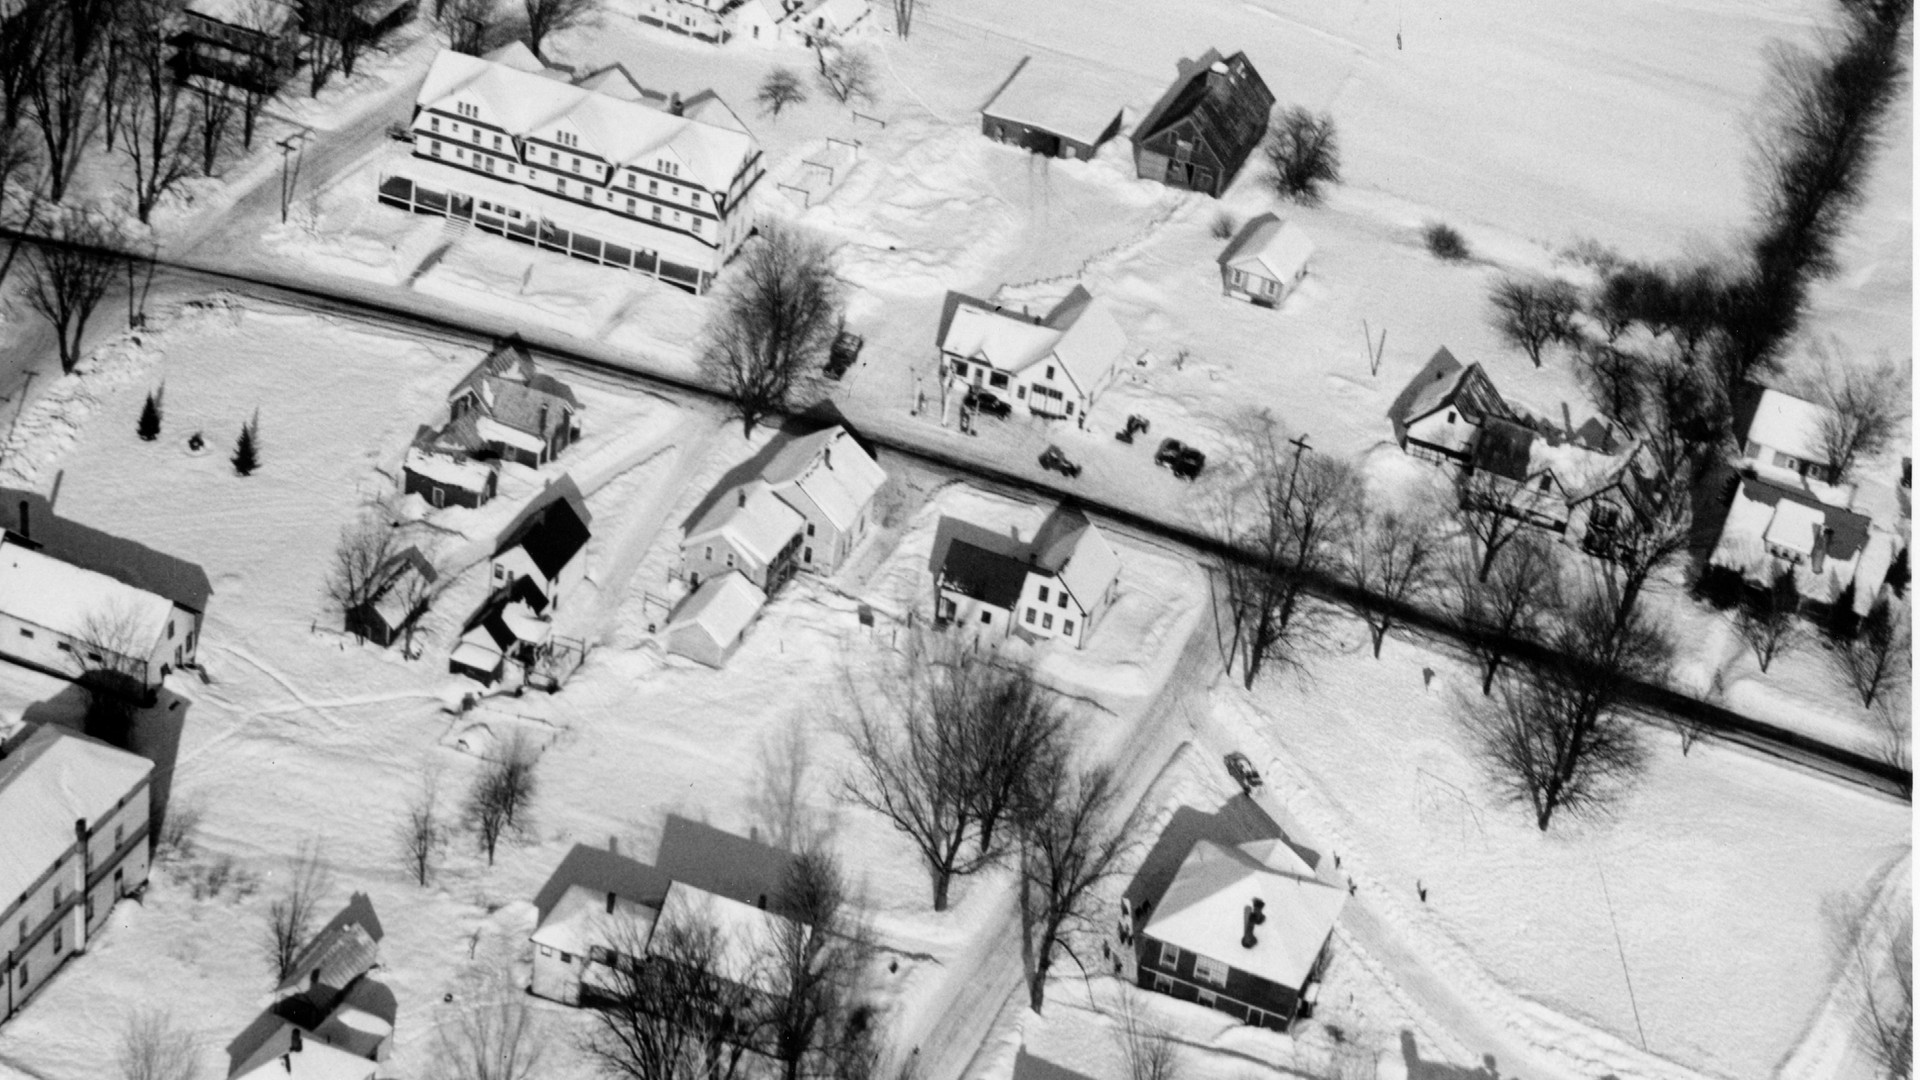 Village Area - Bartlett Hotel - Howards Texaco center and Bartlett High School lower right